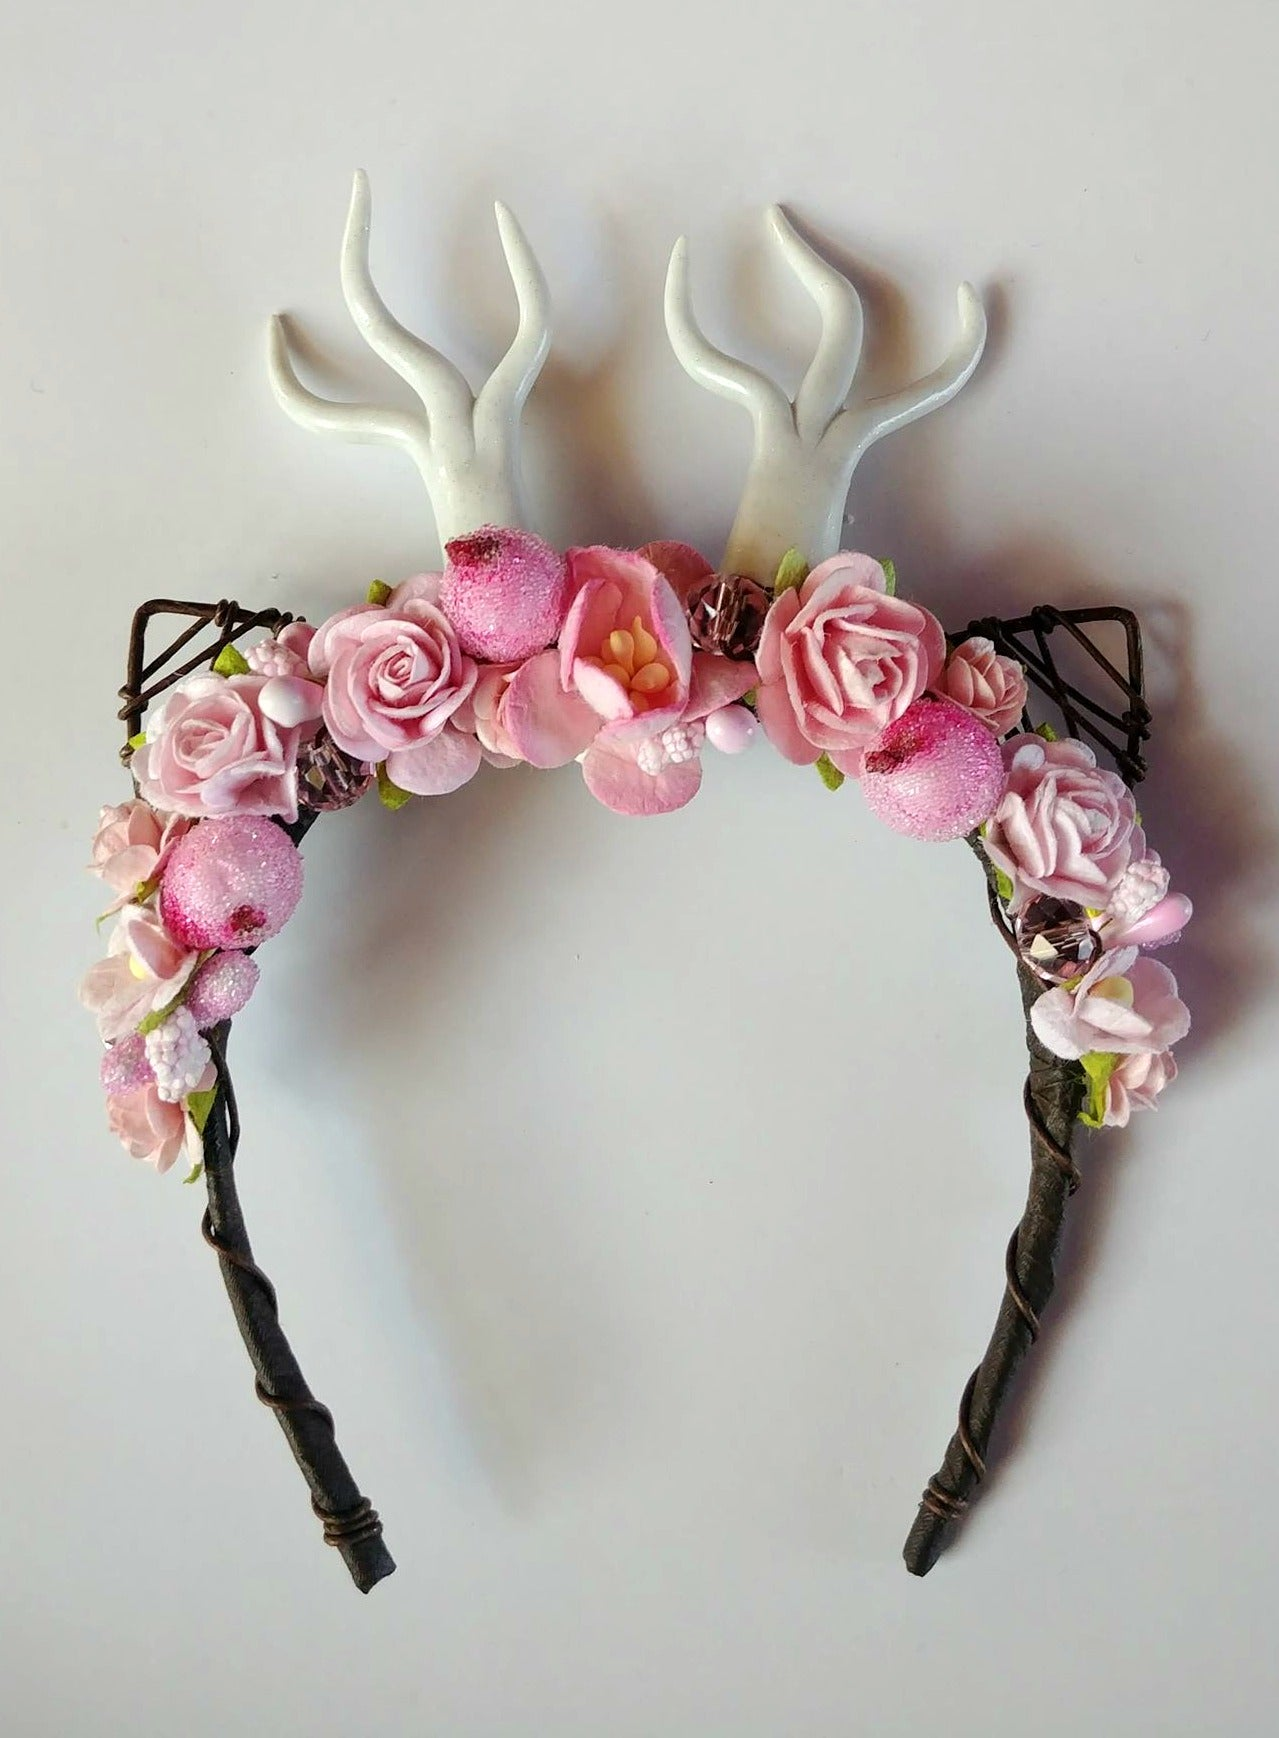 Zazou Dolls Exclusive Deer headband for 18 Inch dolls such as Journey, OG and American Girl